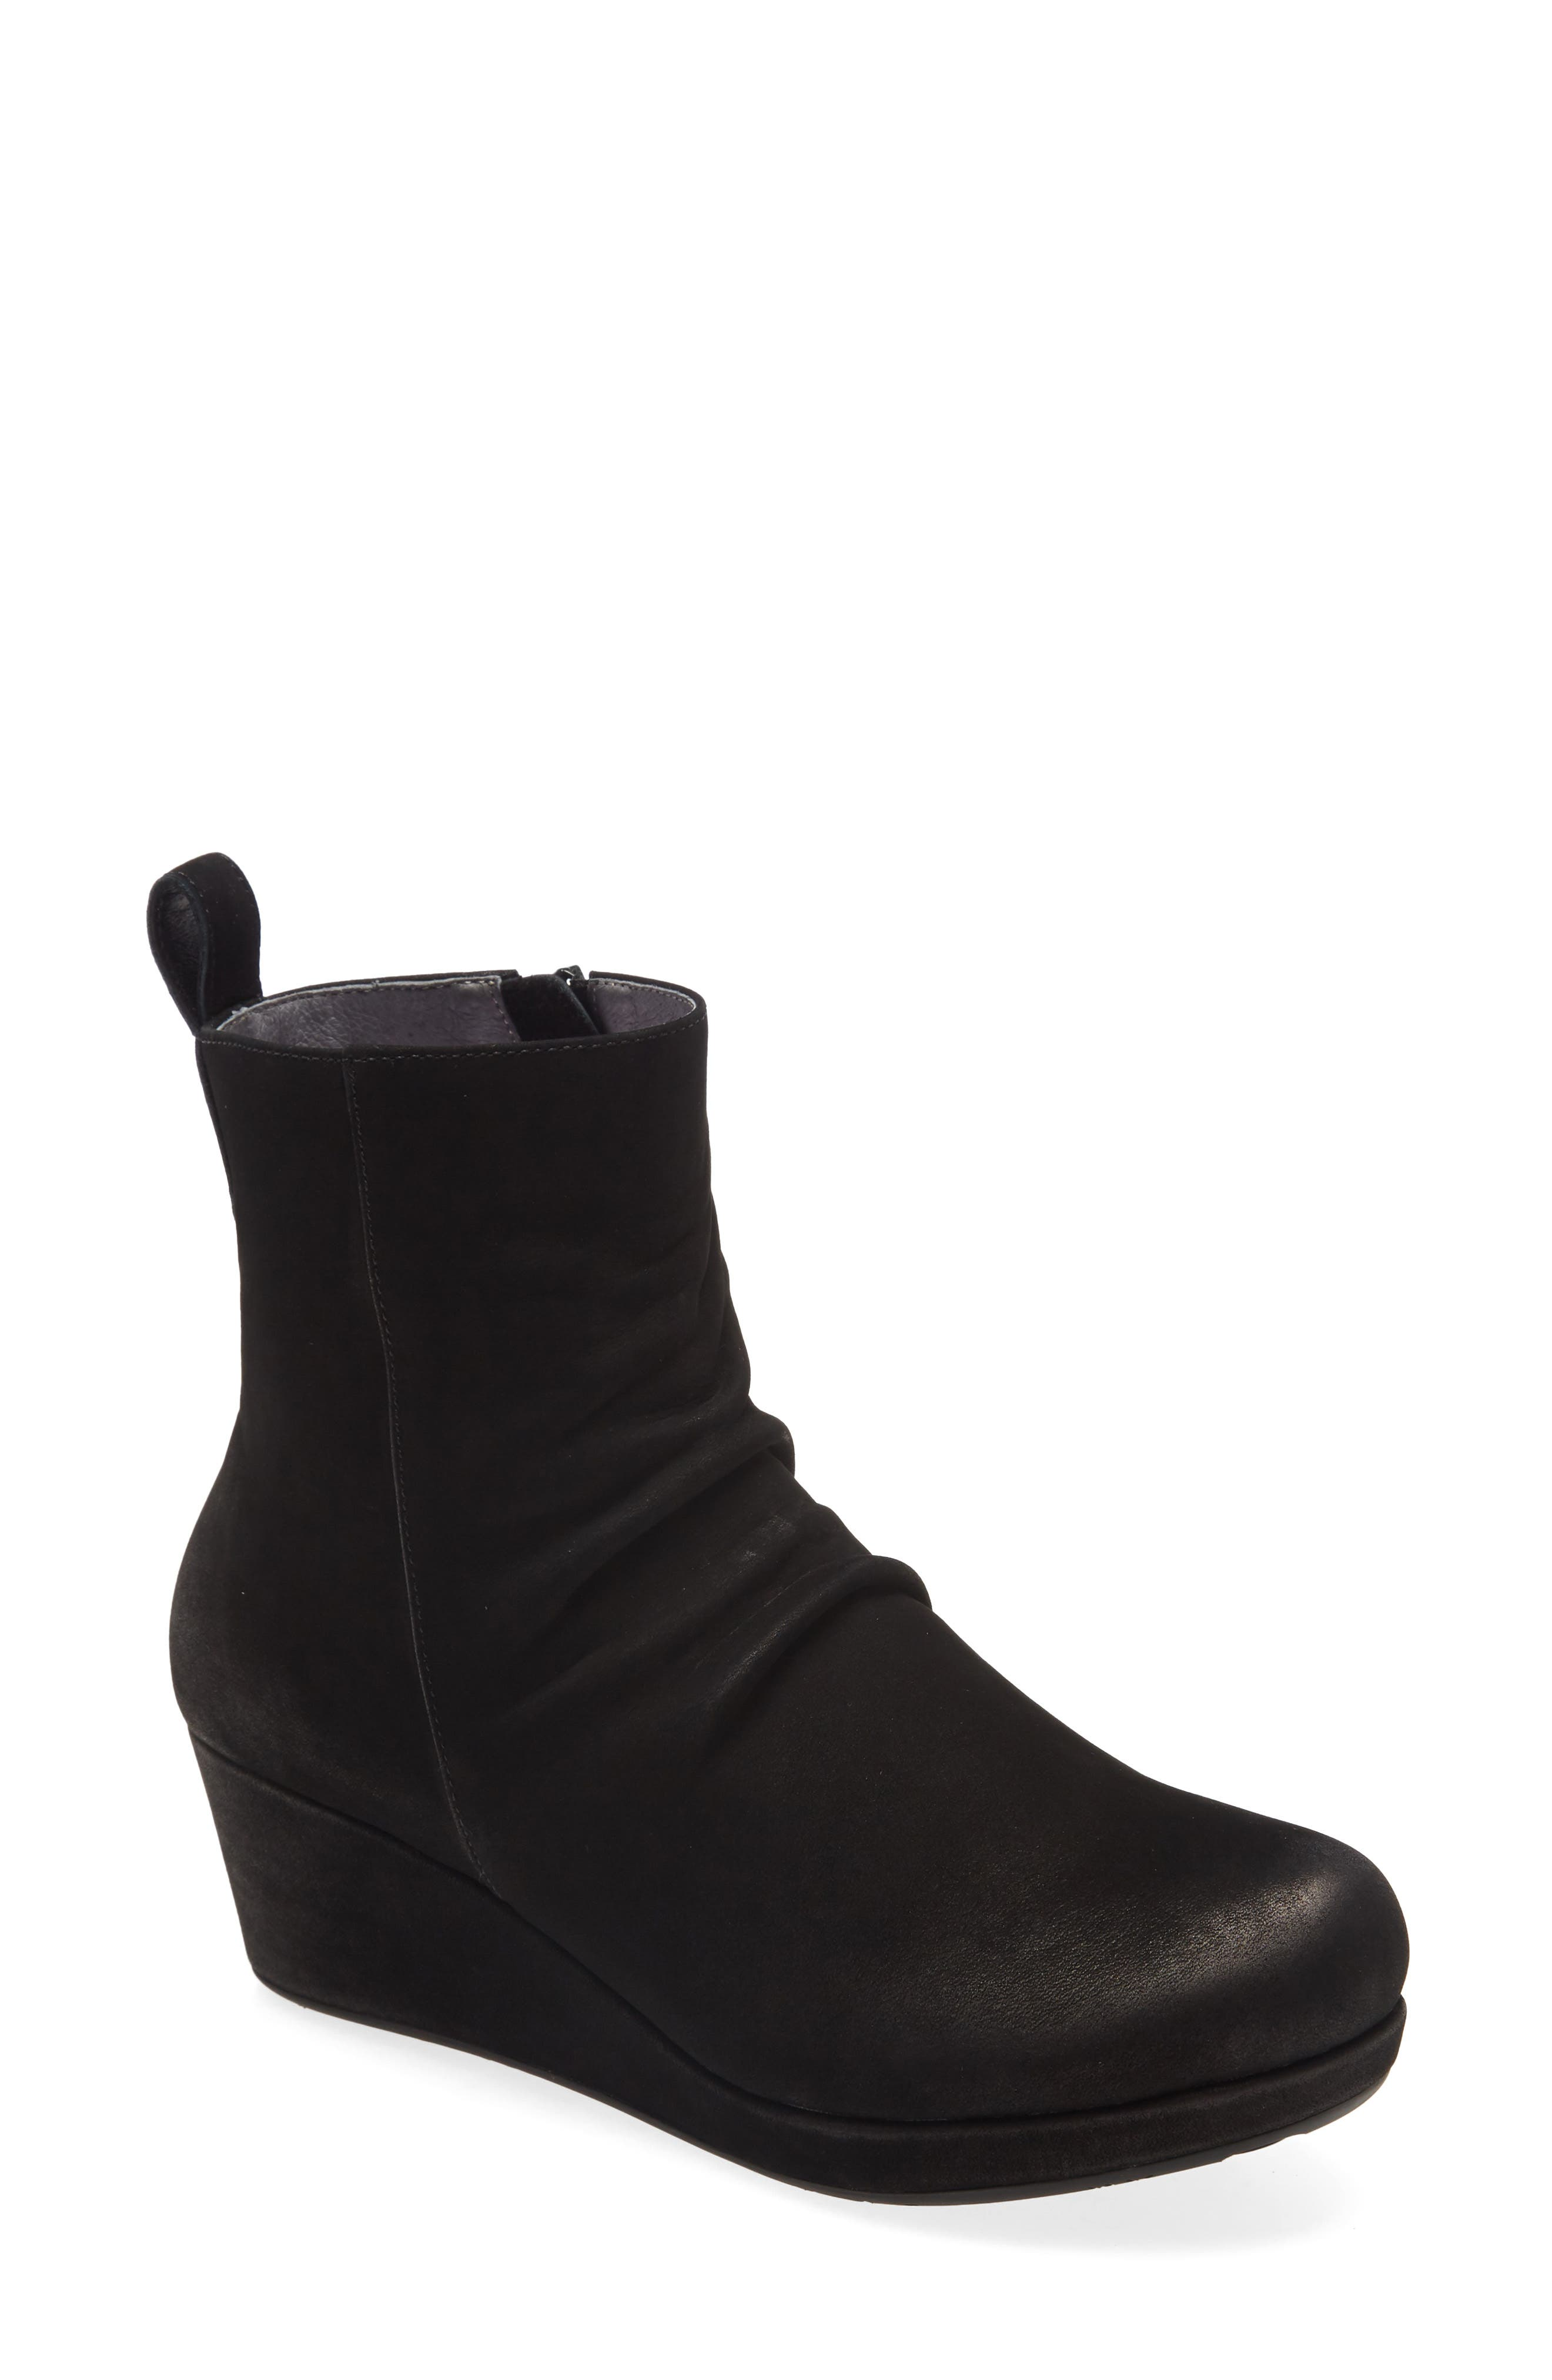 Yash Slouchy Leather Wedge Bootie